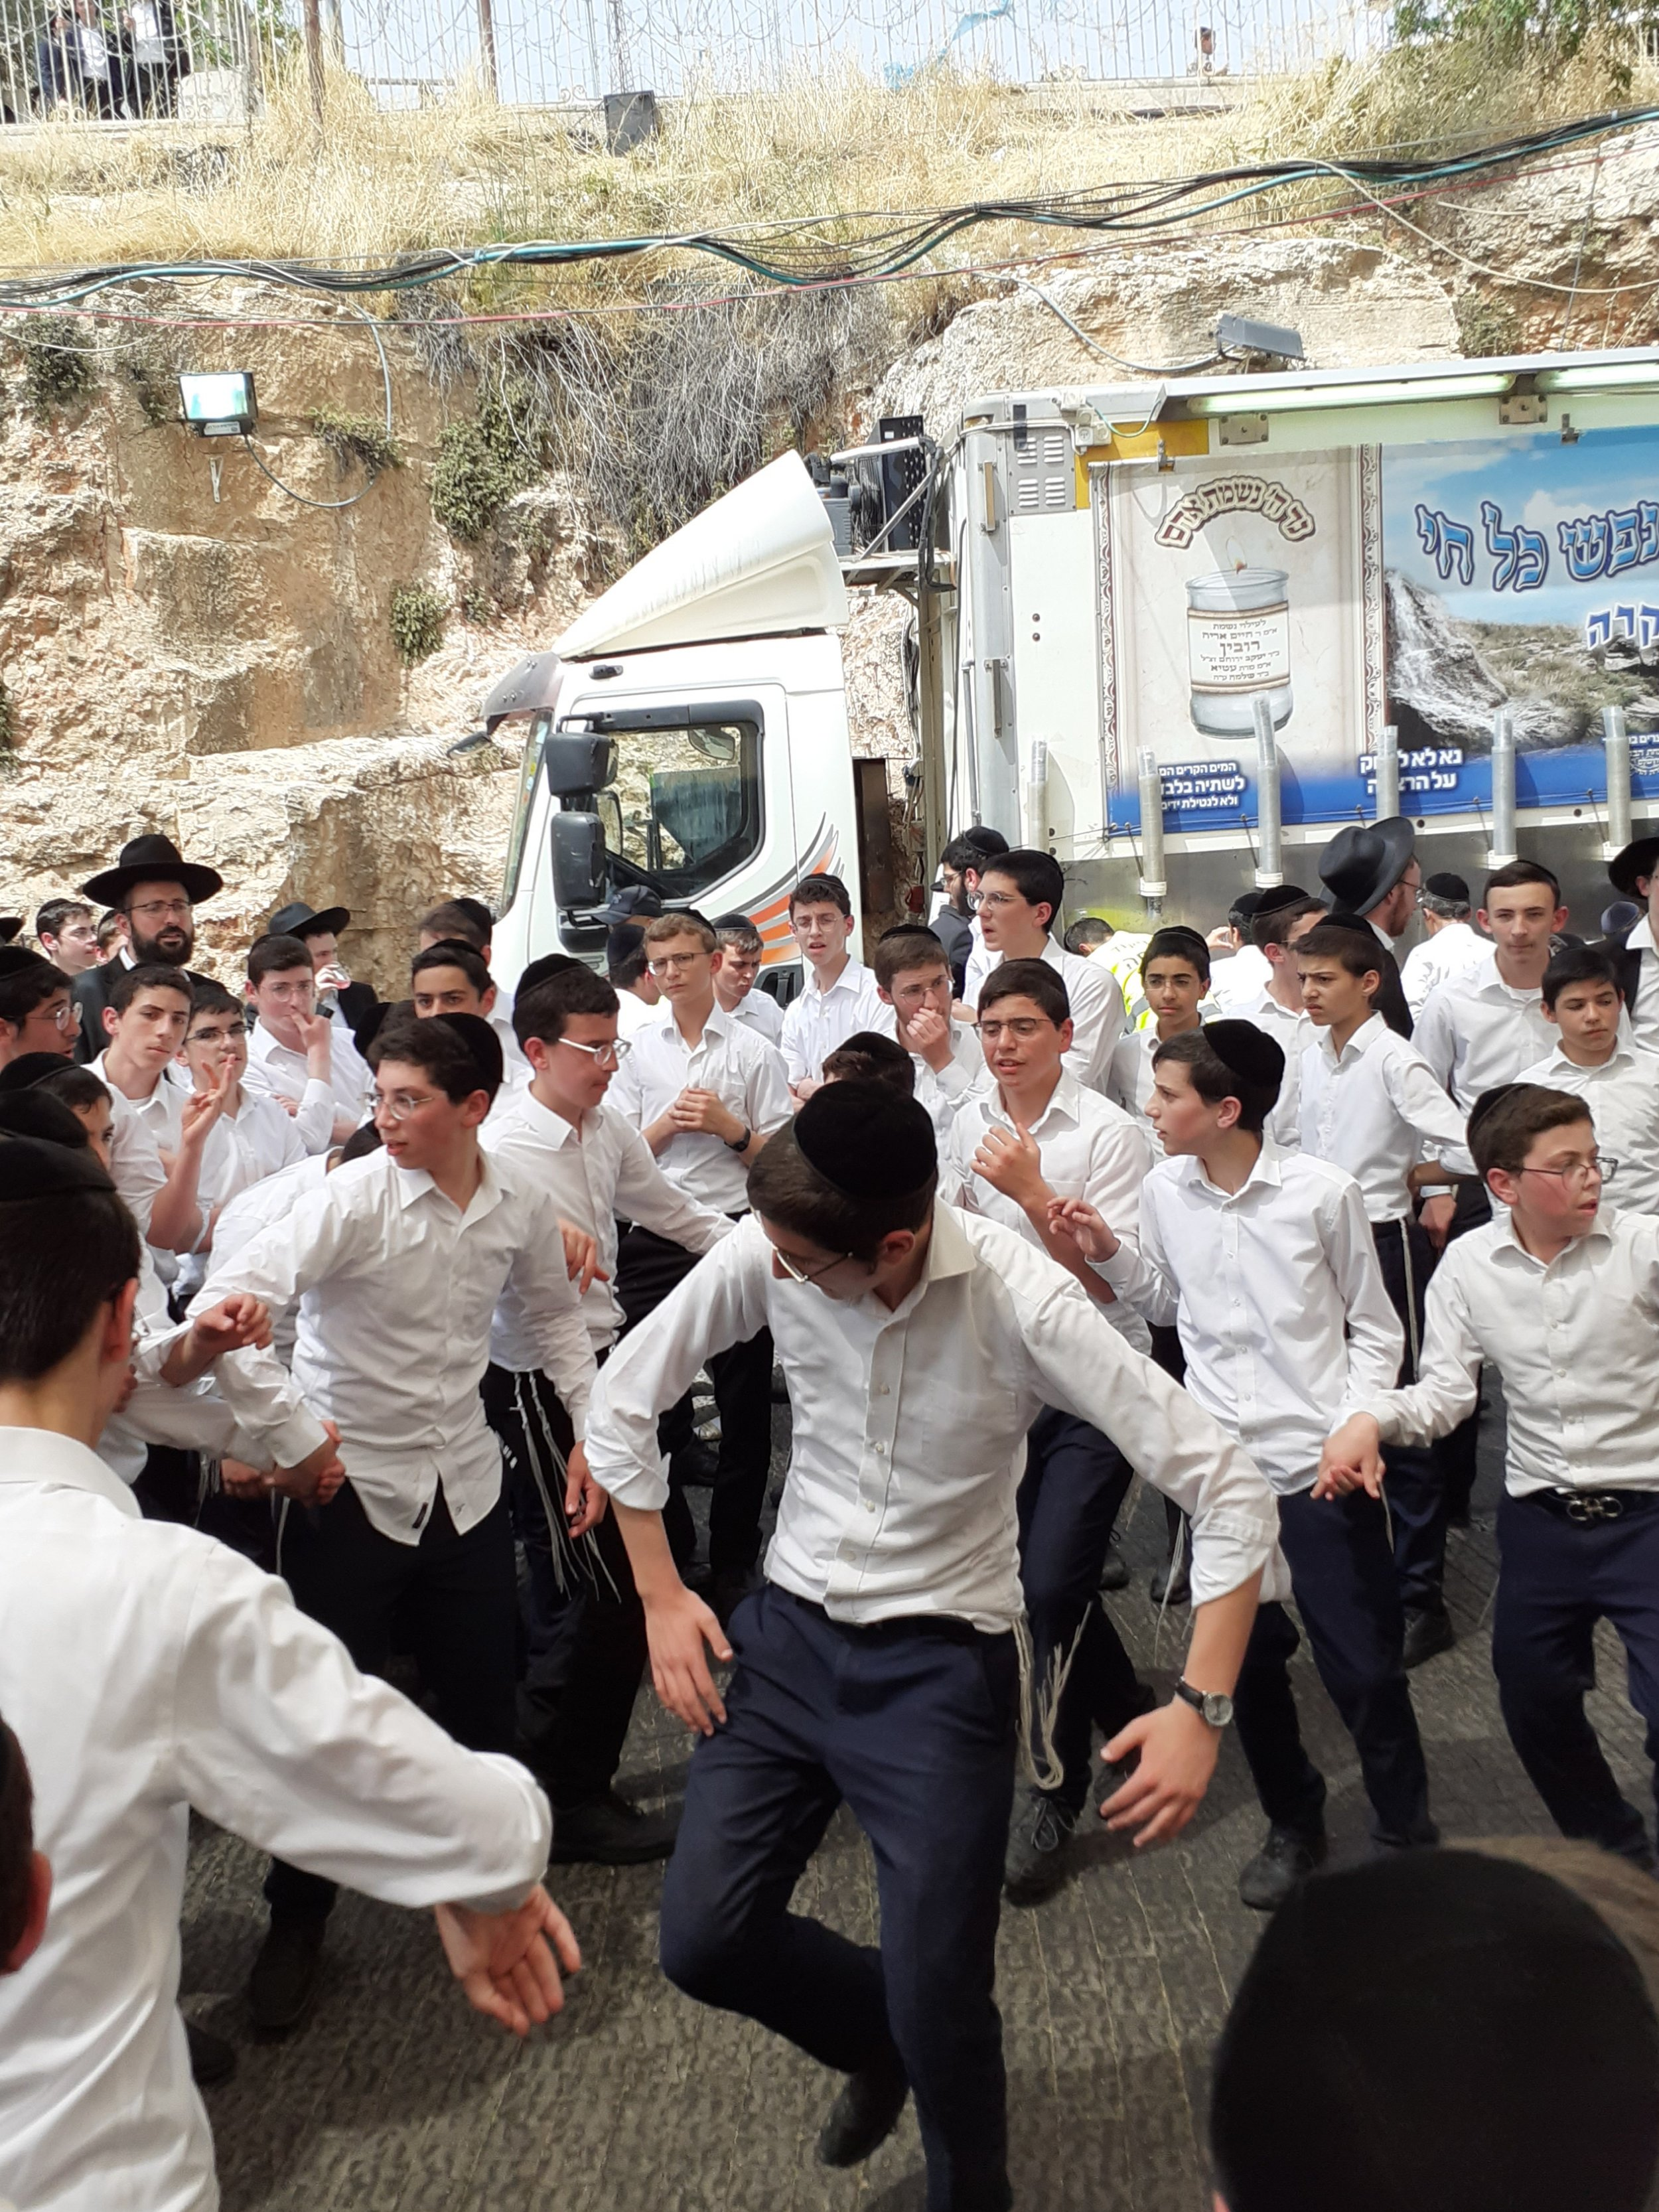 Some boys dance while on pilgrimage.